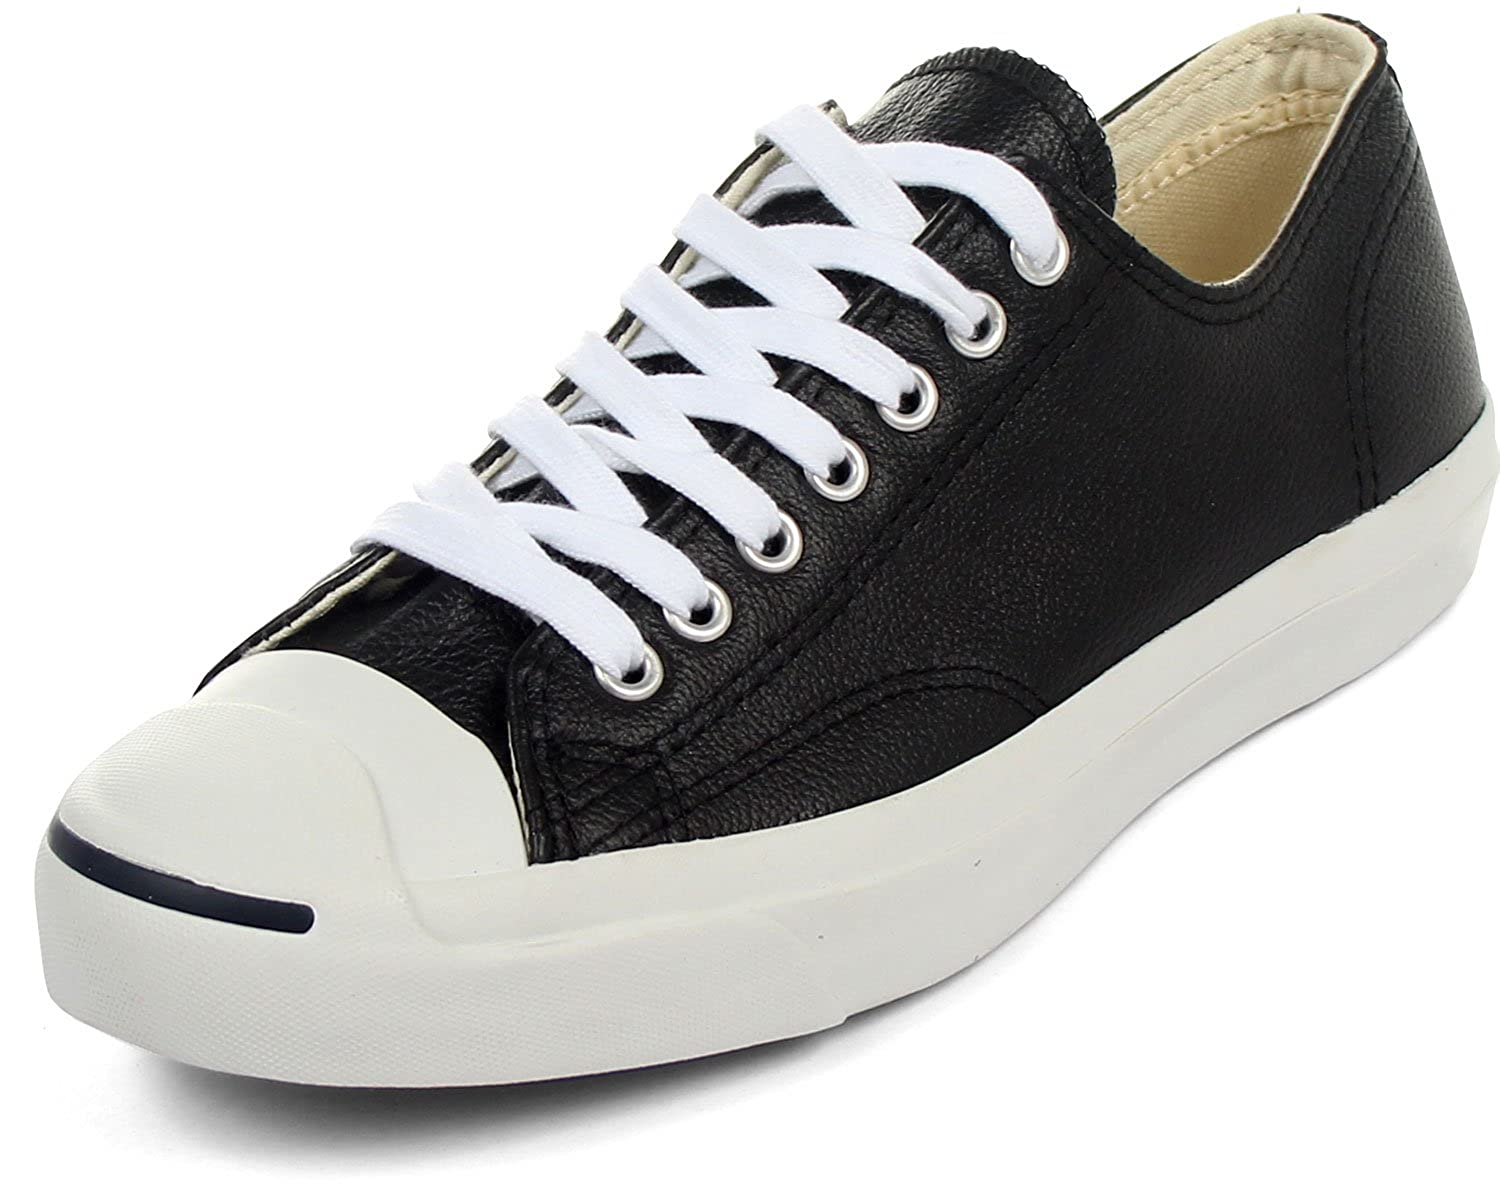 CONVERSE JACK PURCELL Canvas Ox Herren Turnschuhe Blau